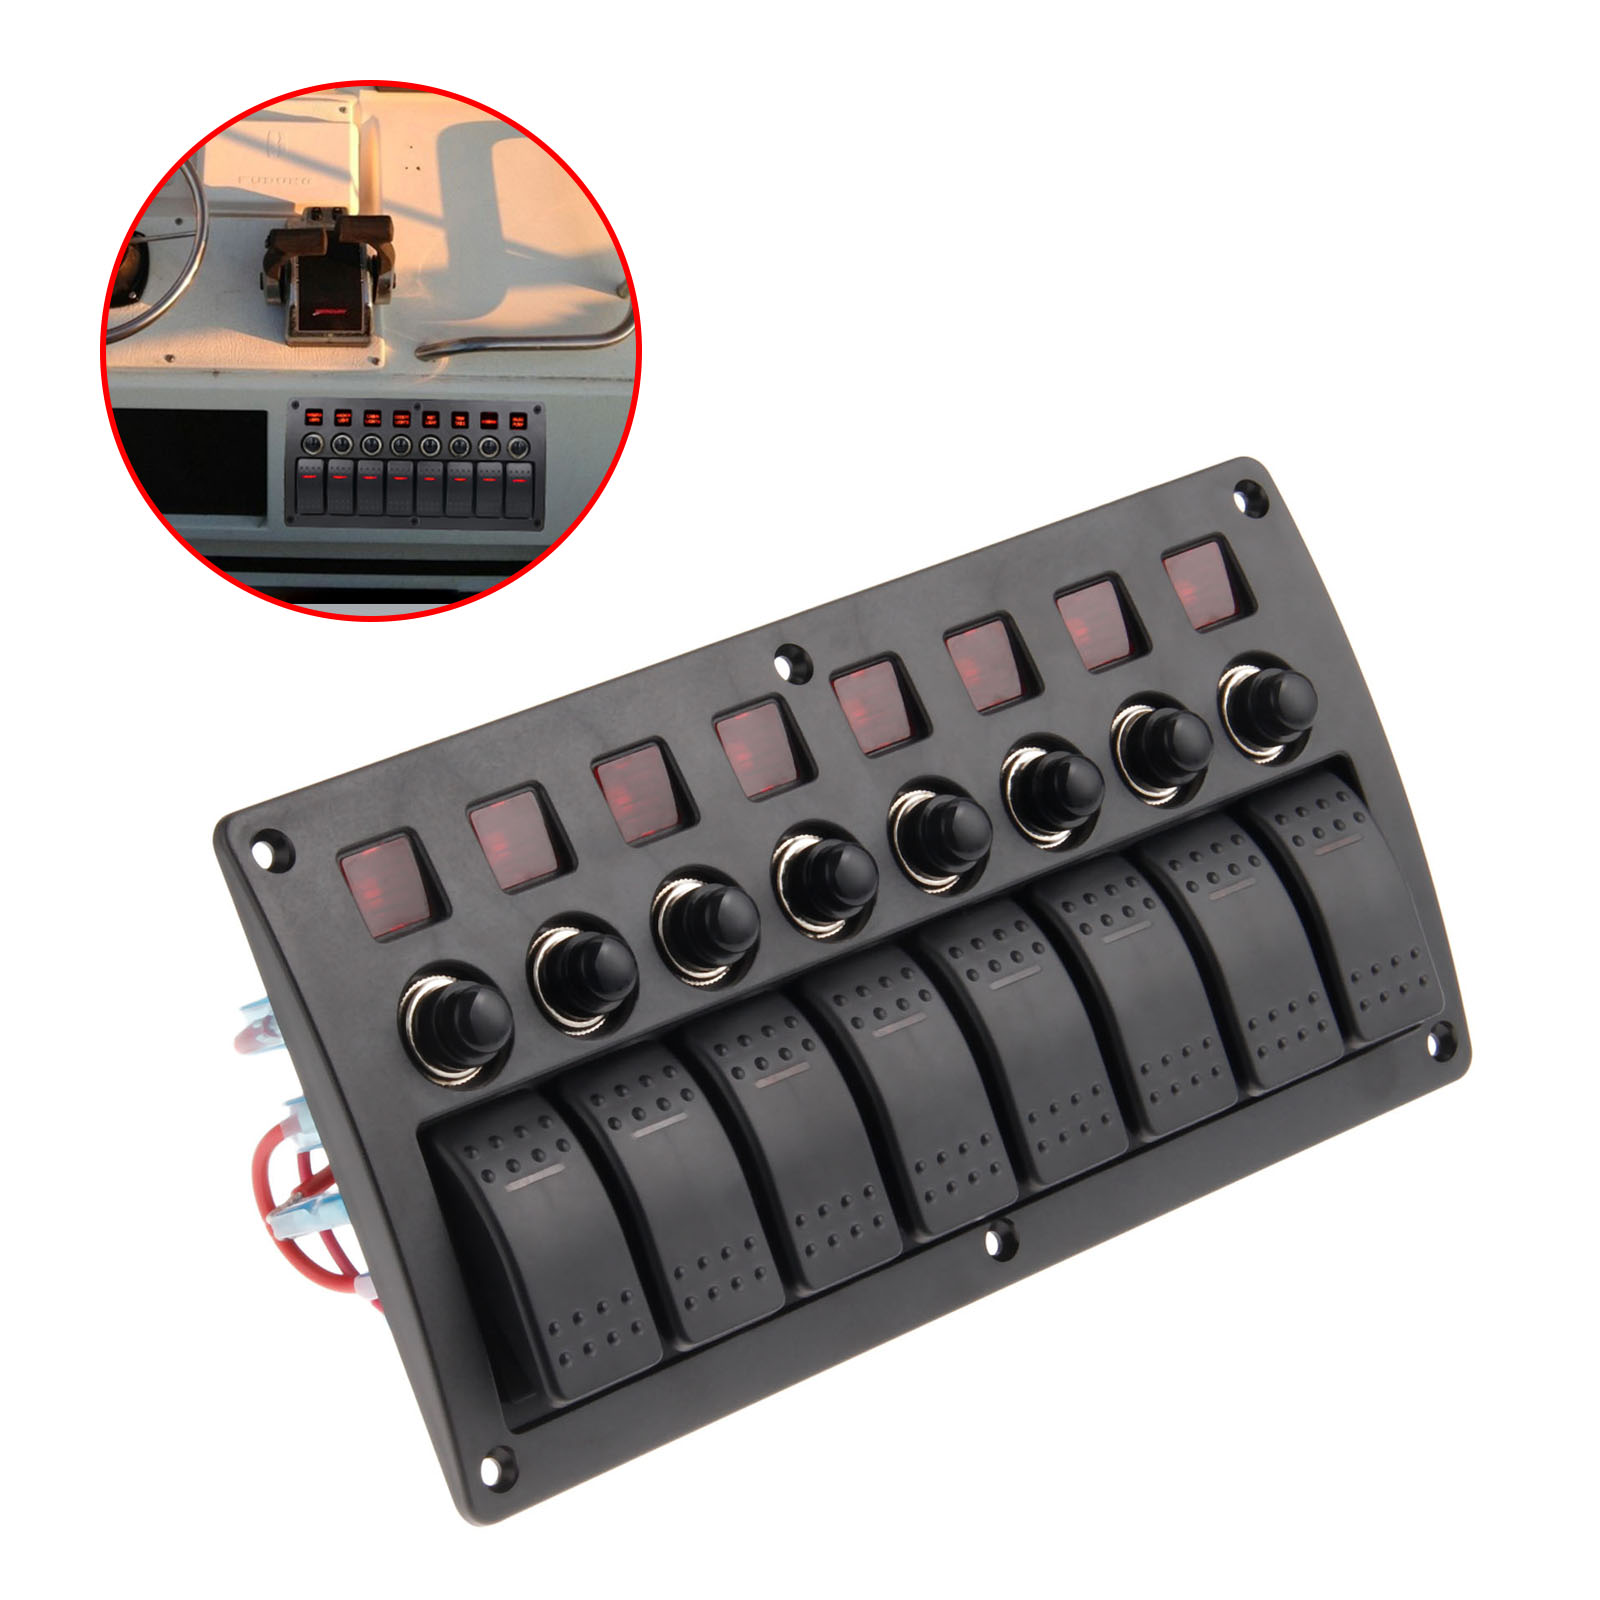 Mgoodoo 3 PIN 8 Gang Rocker Switch Panel Circuit Breakers Red Led 12V 24V Marine Boat Motor Overload Protected Car Switch Panel g126y 2pcs red led light 25 31mm spst 4pin on off boat rocker switch 16a 250v 20a 125v car dashboard home high quality cheaper